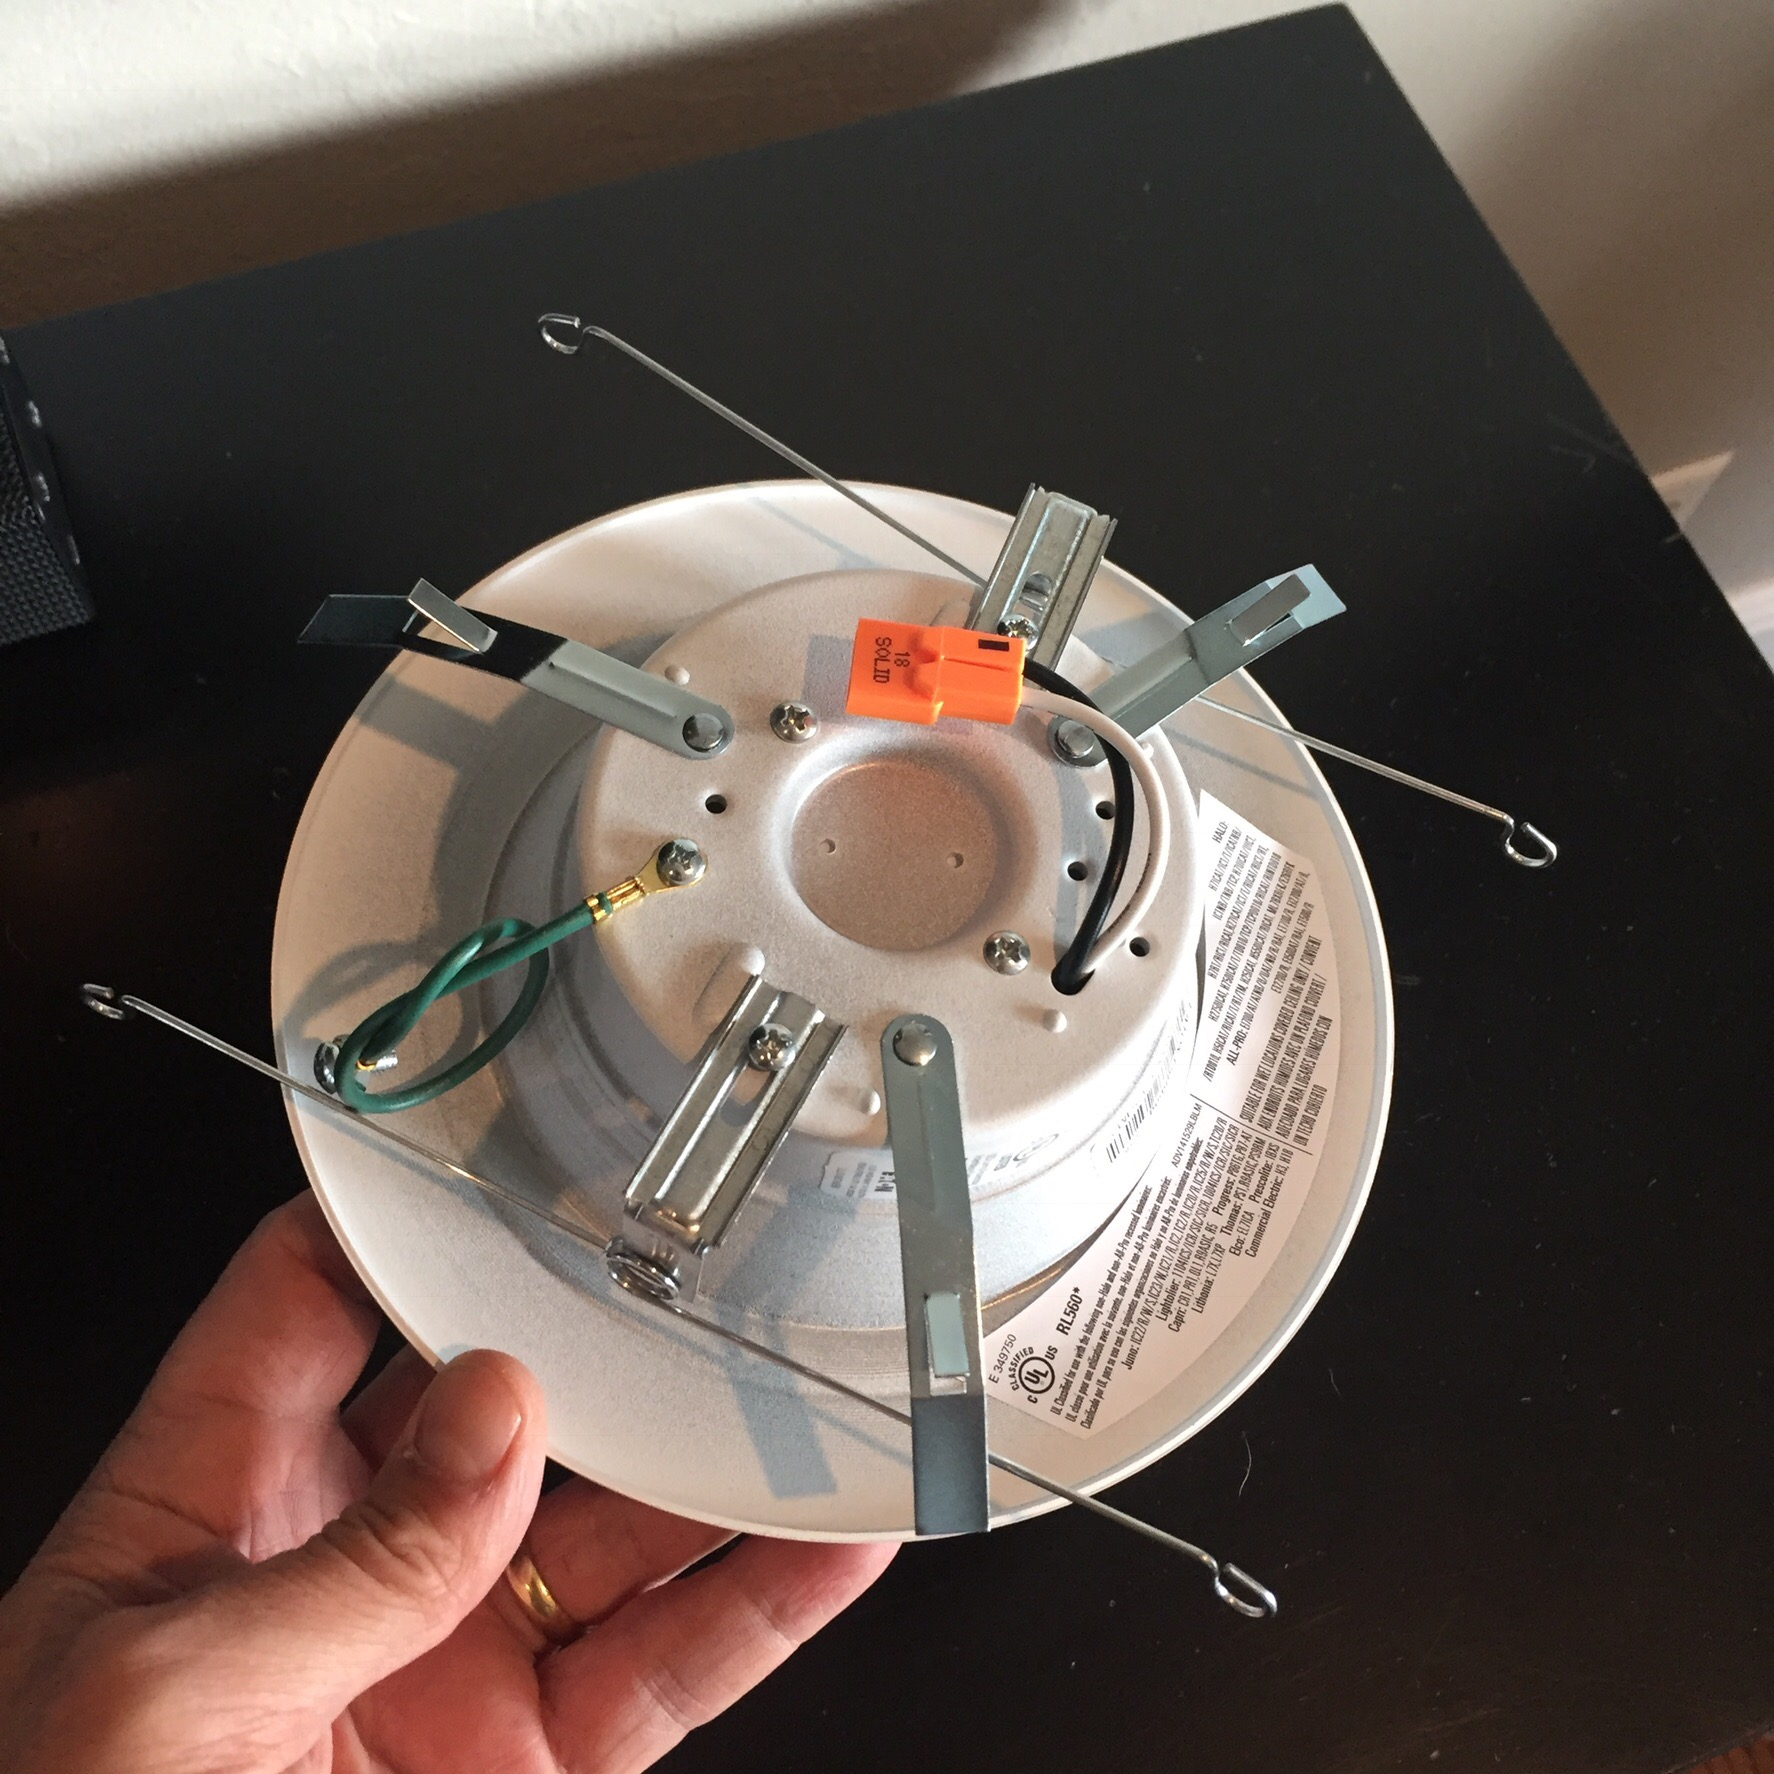 This brand of LED recessed lighting comes with two built-in assemblies for installation Torsion Springs and Friction Clips. & LED Lighting Conversion and Installation u2013 Handiest Jew™ azcodes.com